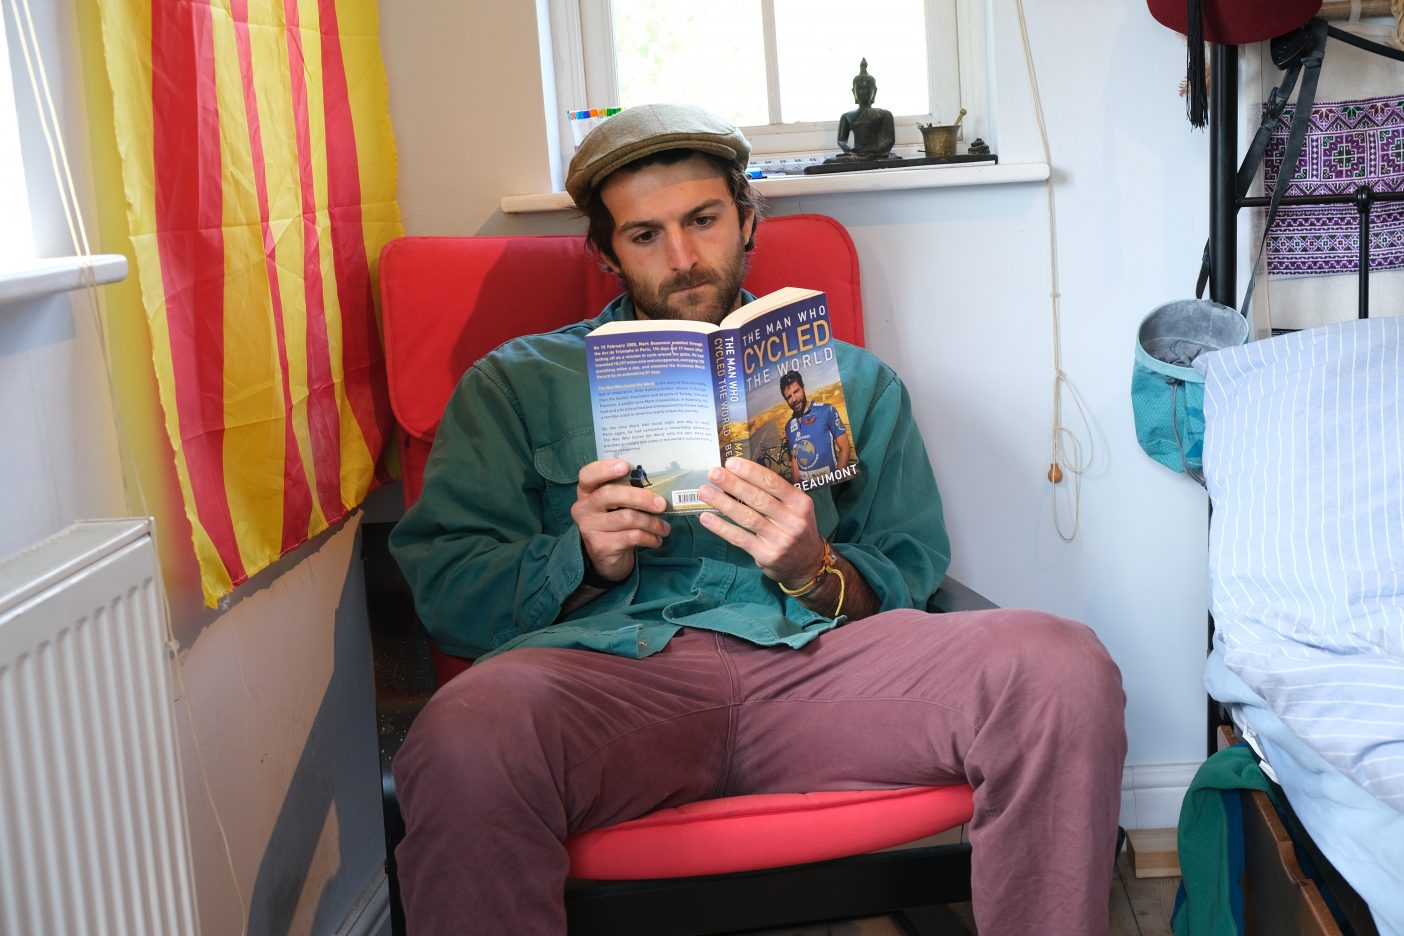 Man reading an adventure book